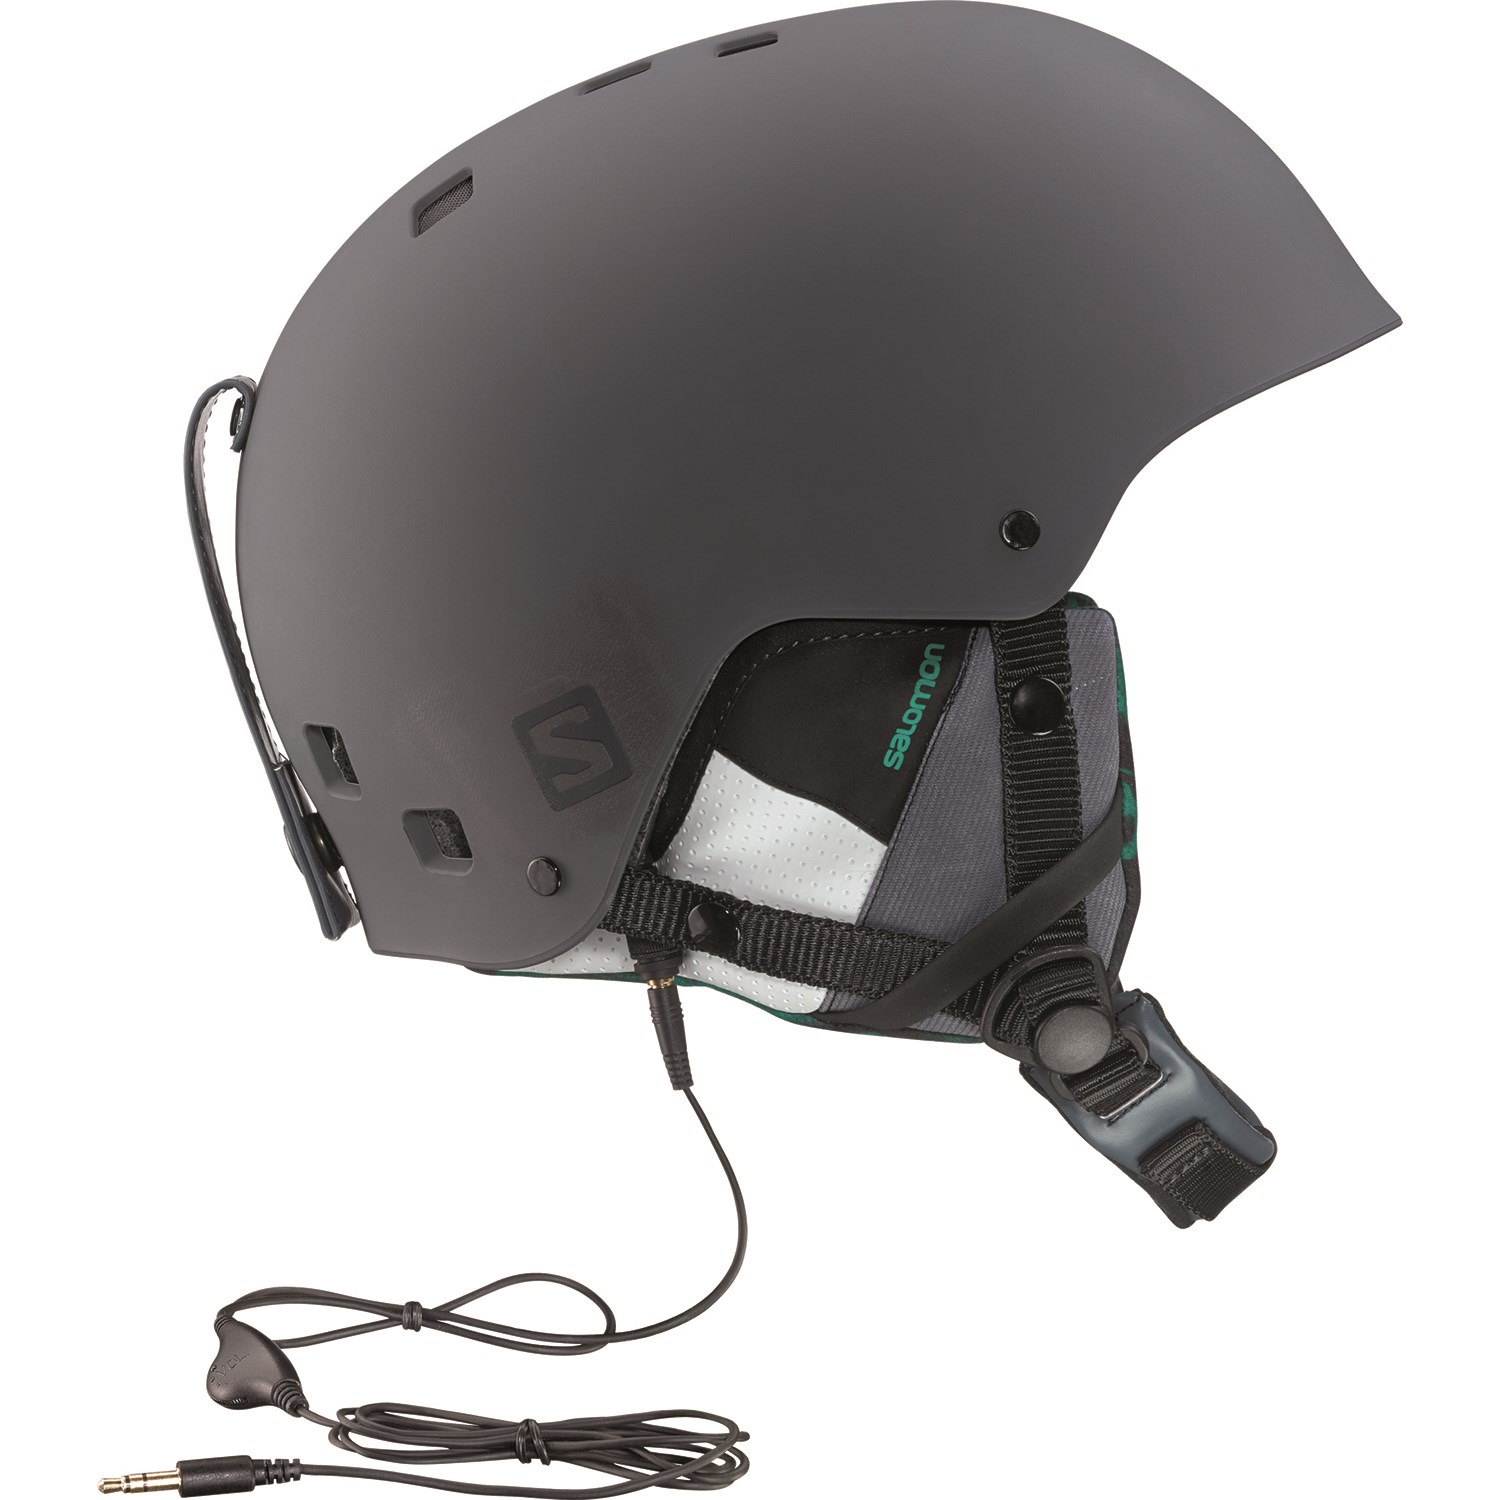 2d0a18b52628 Salomon Brigade Audio Helmet